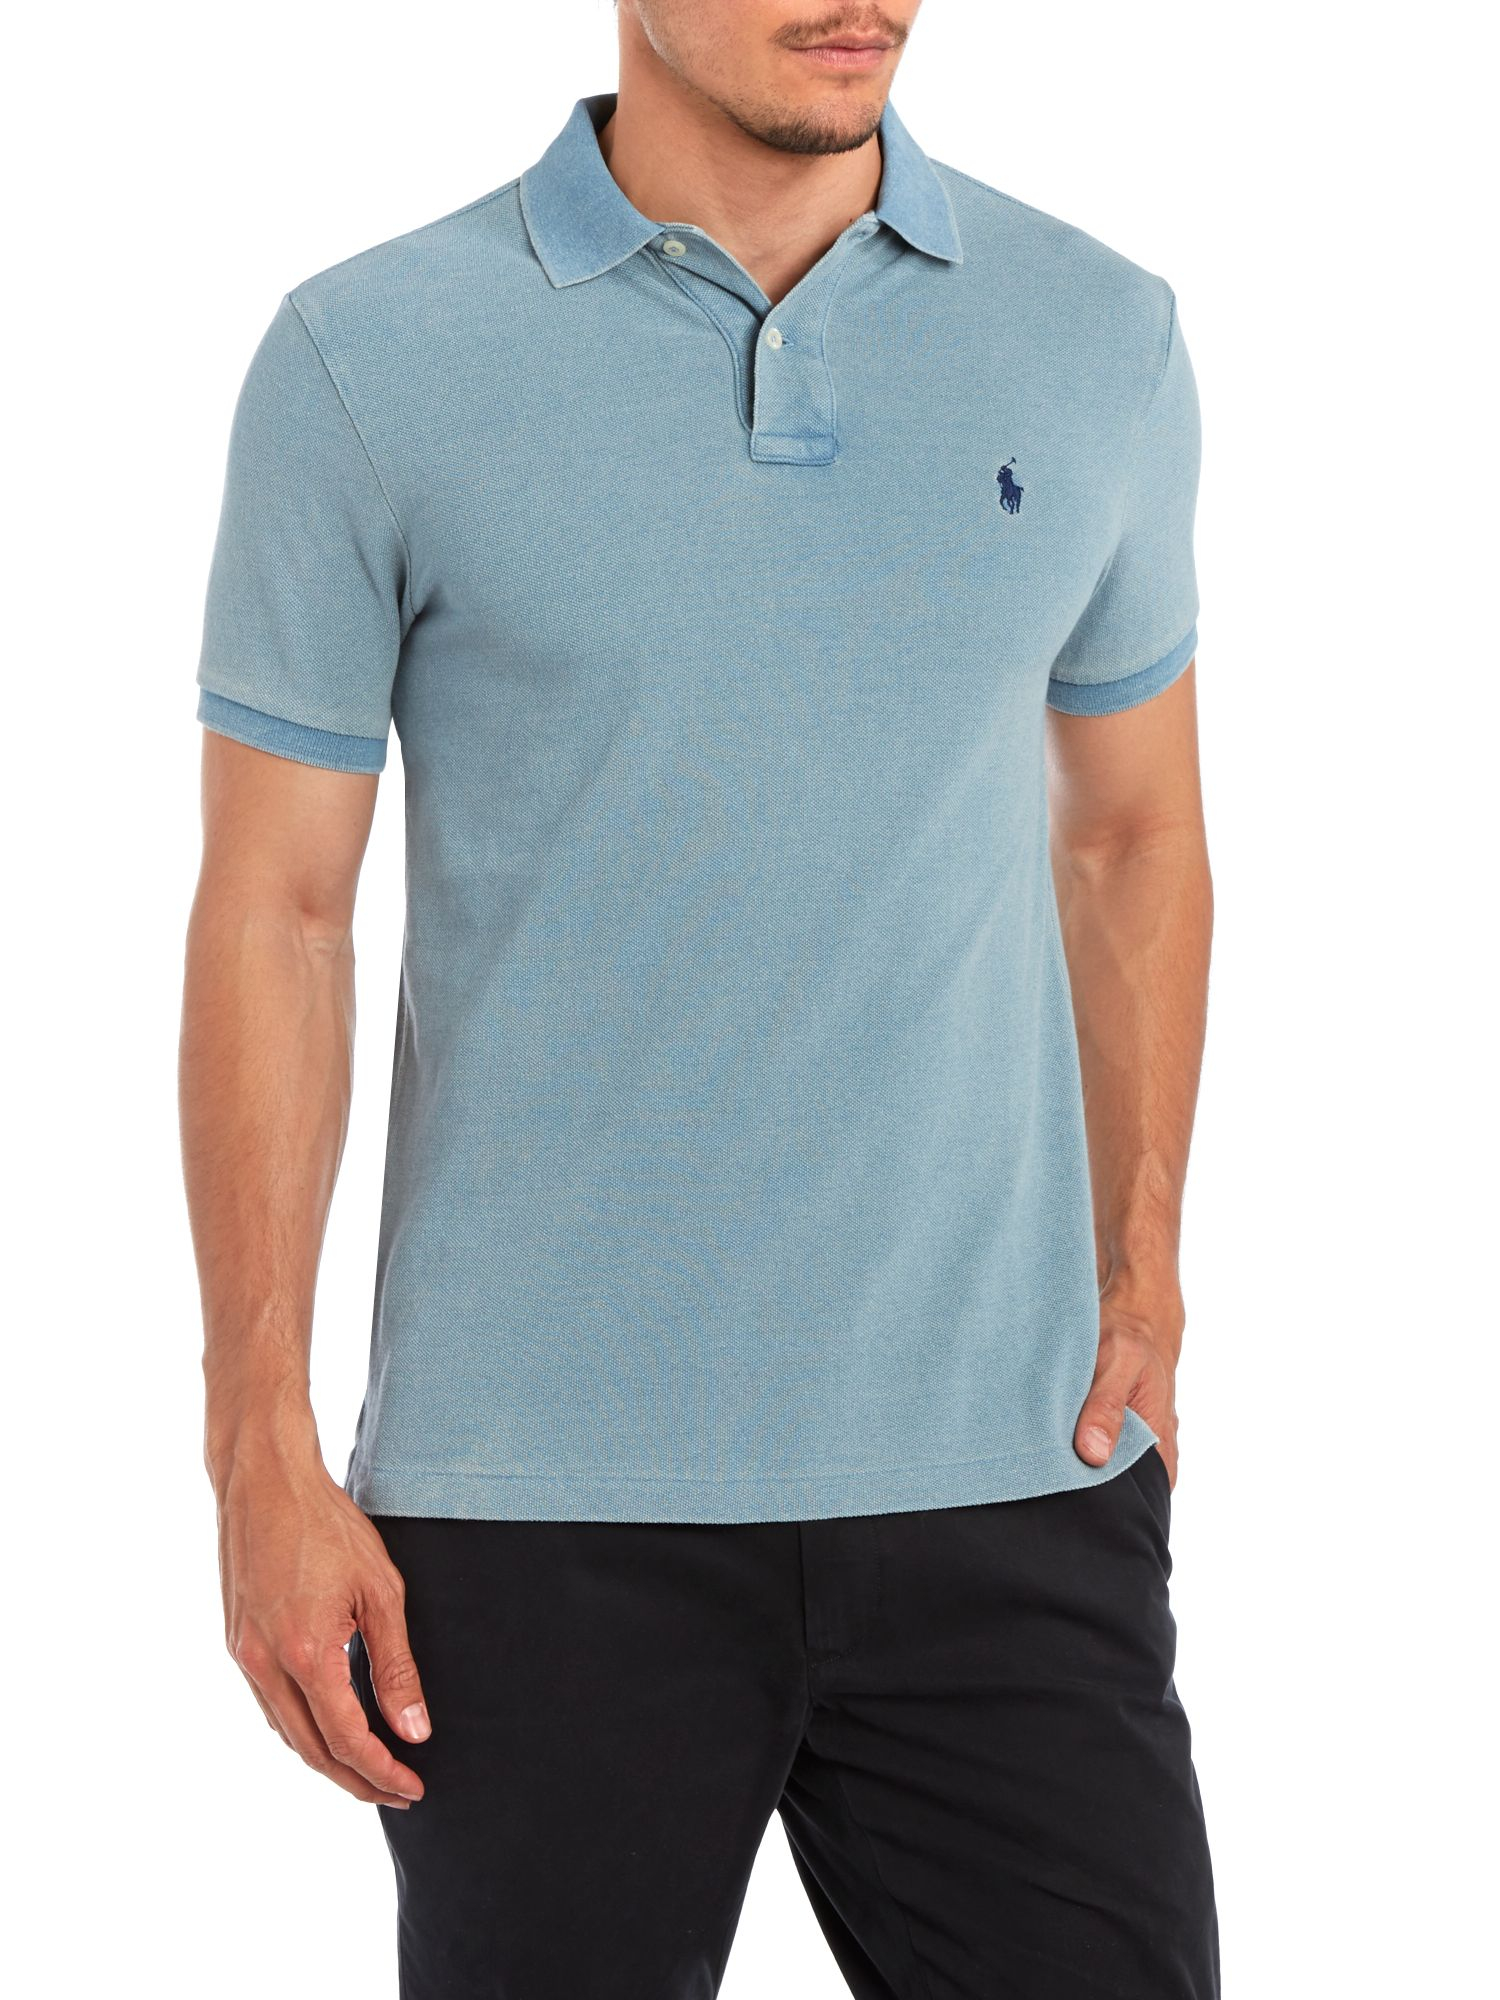 Lyst polo ralph lauren slim fit short sleeve mesh polo for Slim fit collared shirts